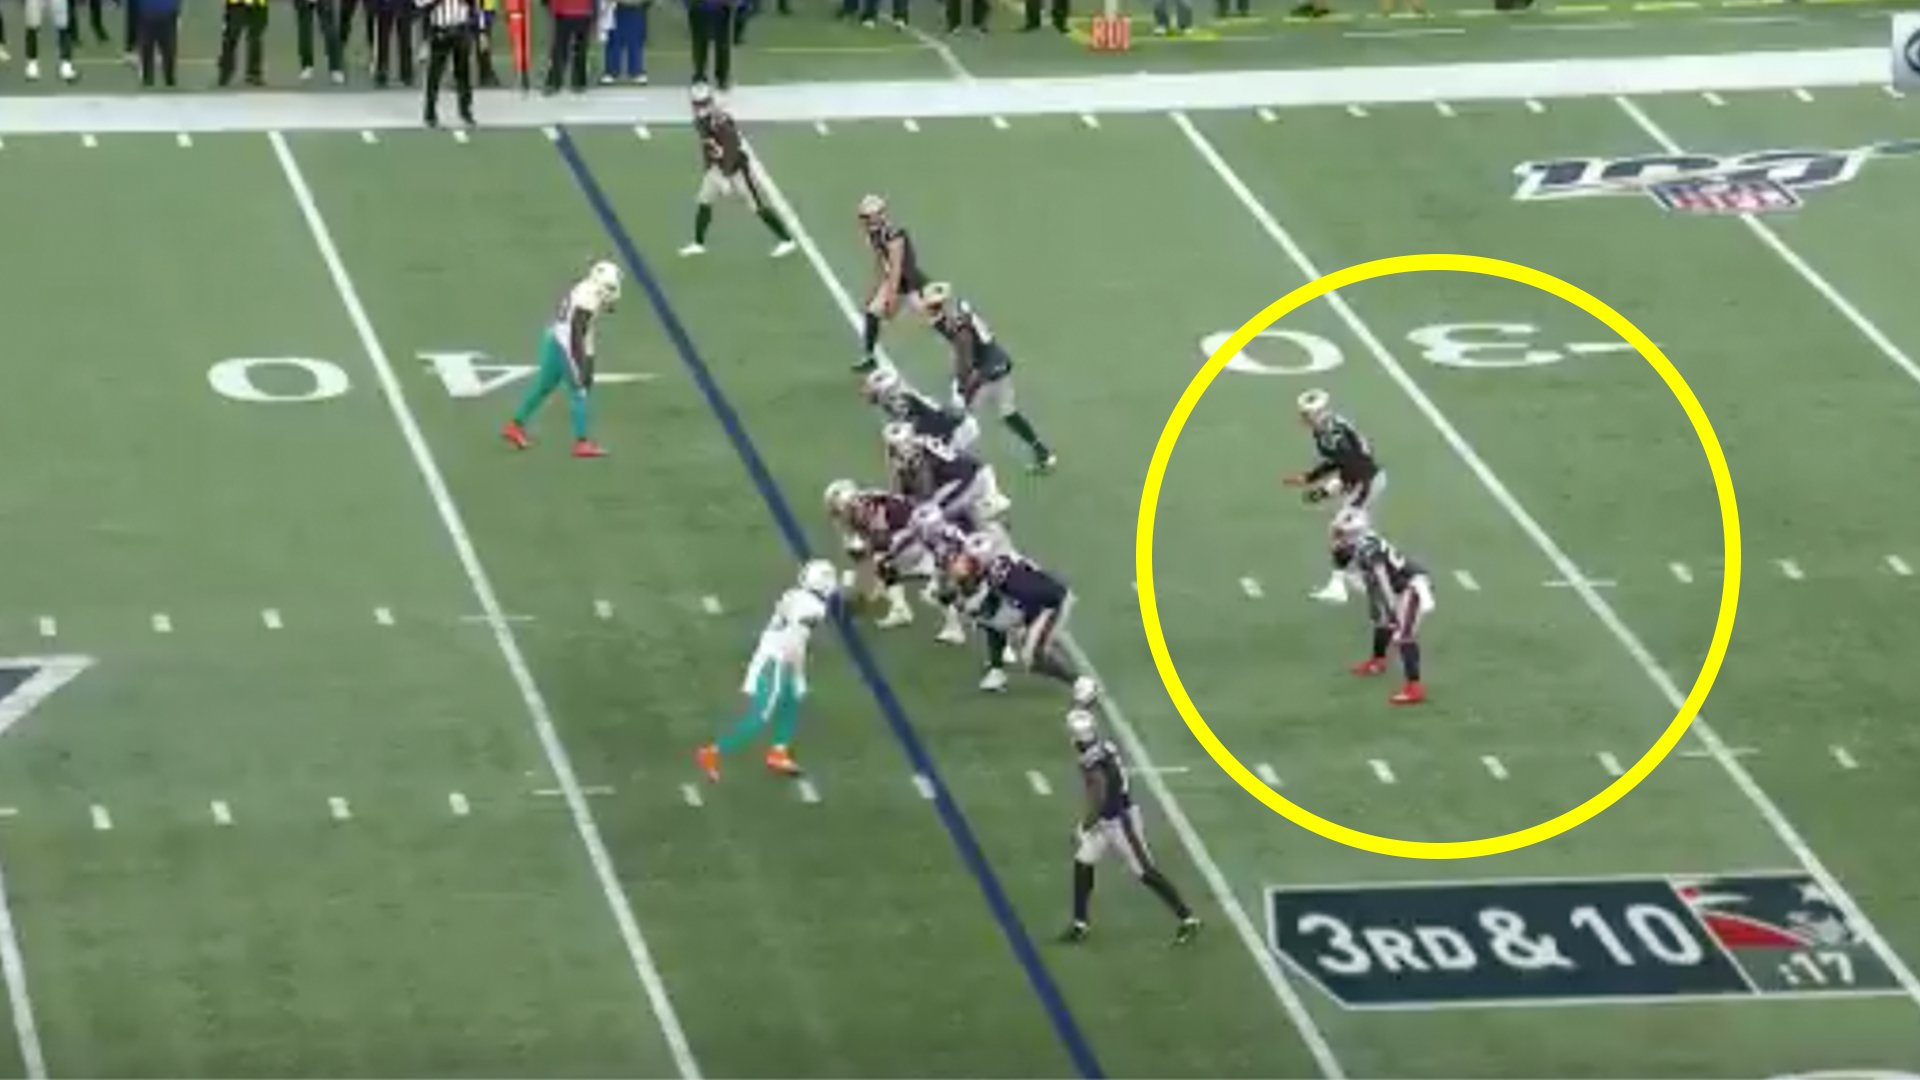 This is why NFL players don't pass like they do in rugby